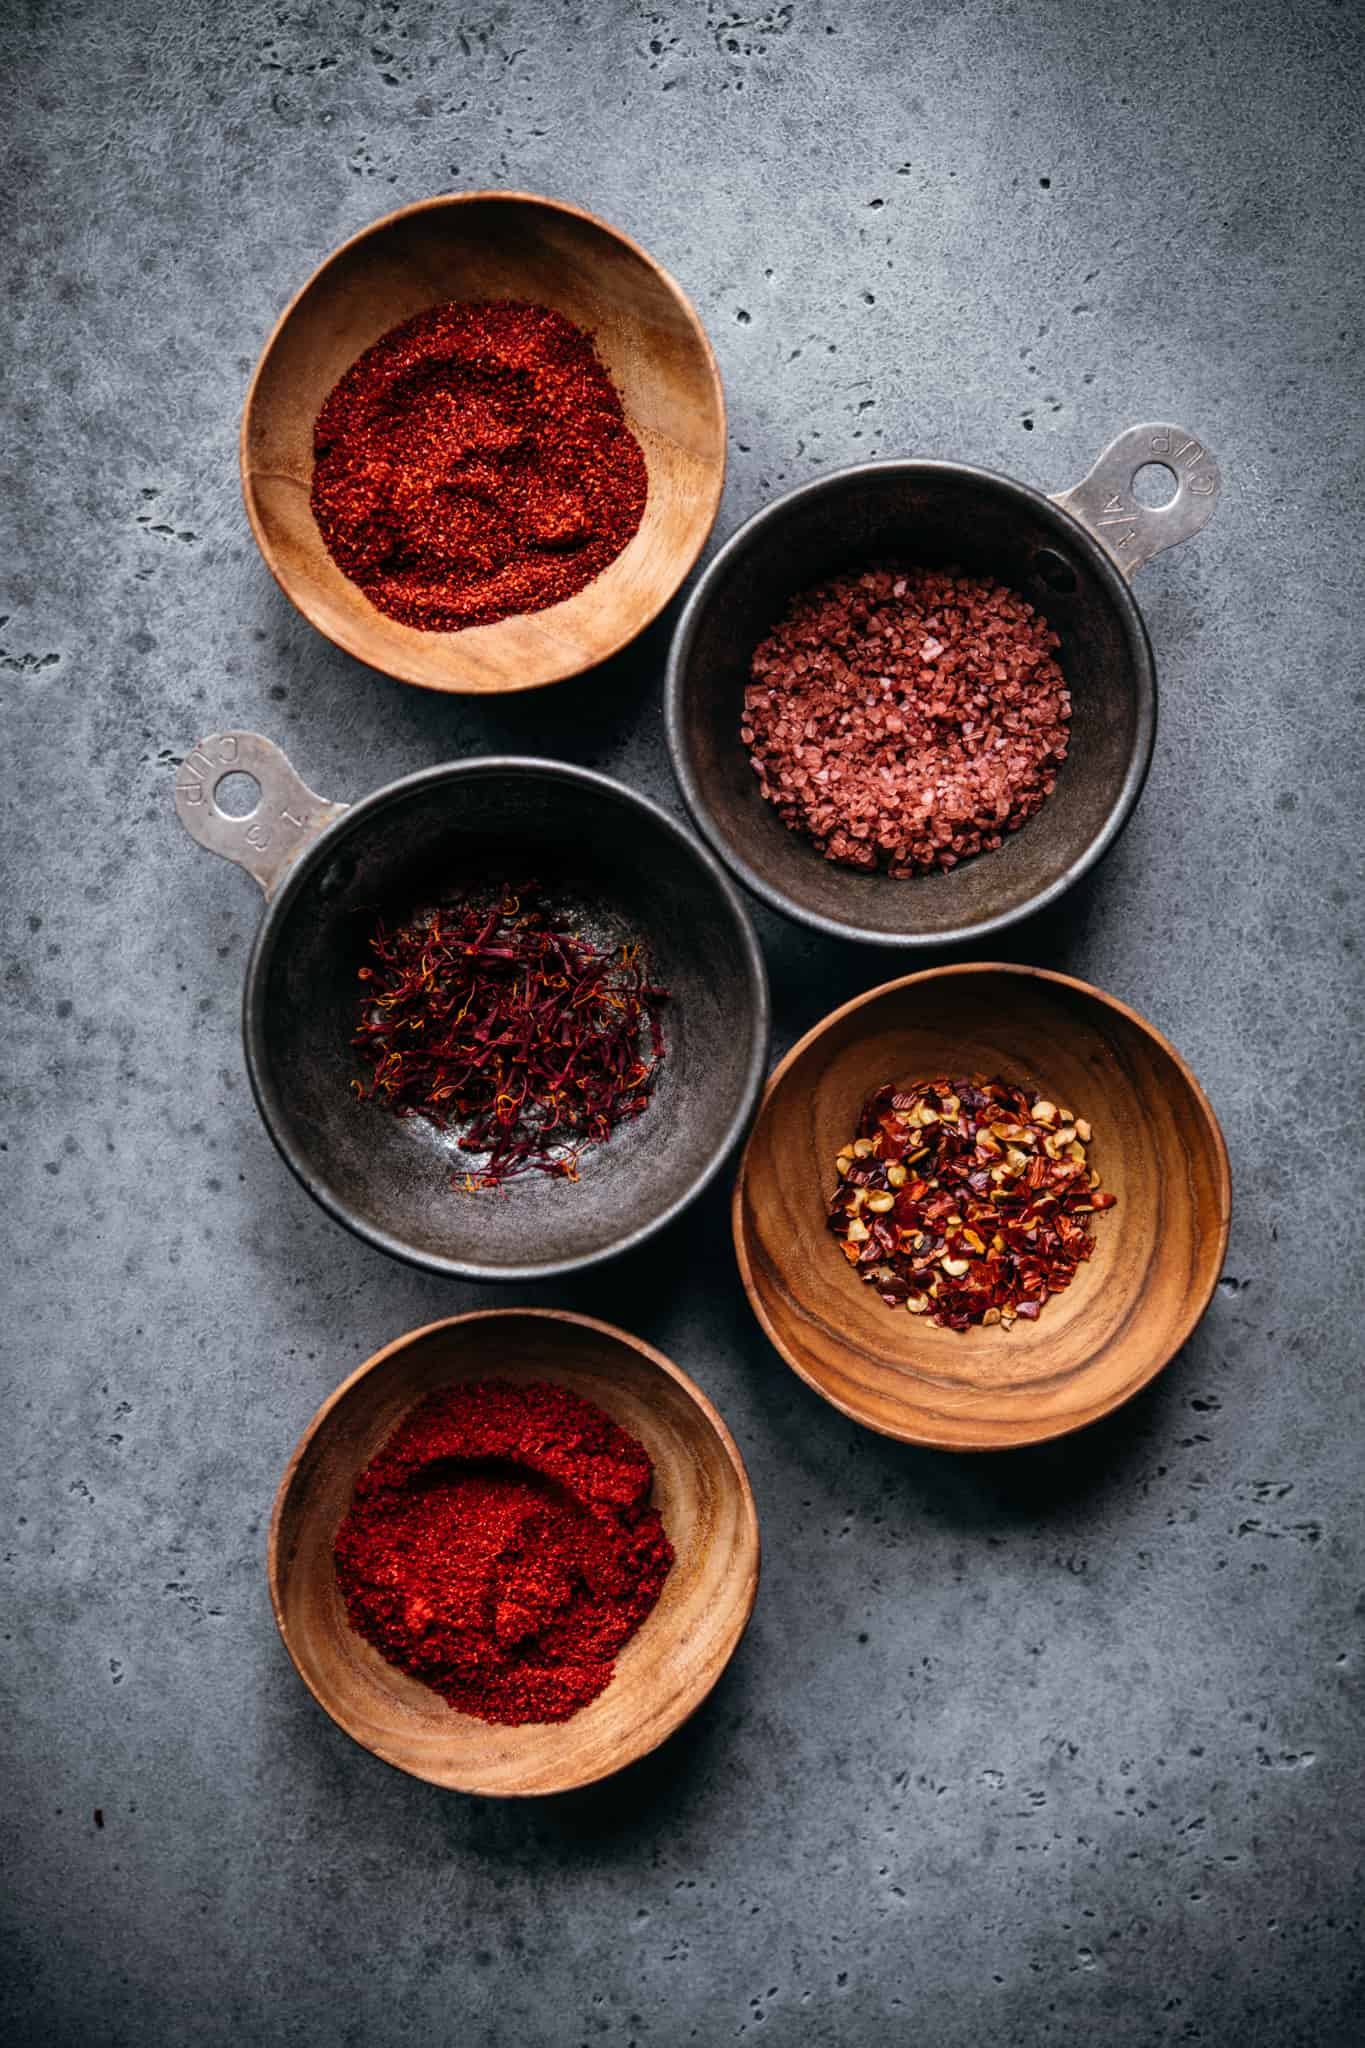 overhead view of spices in small bowls to use in vegan paella recipe